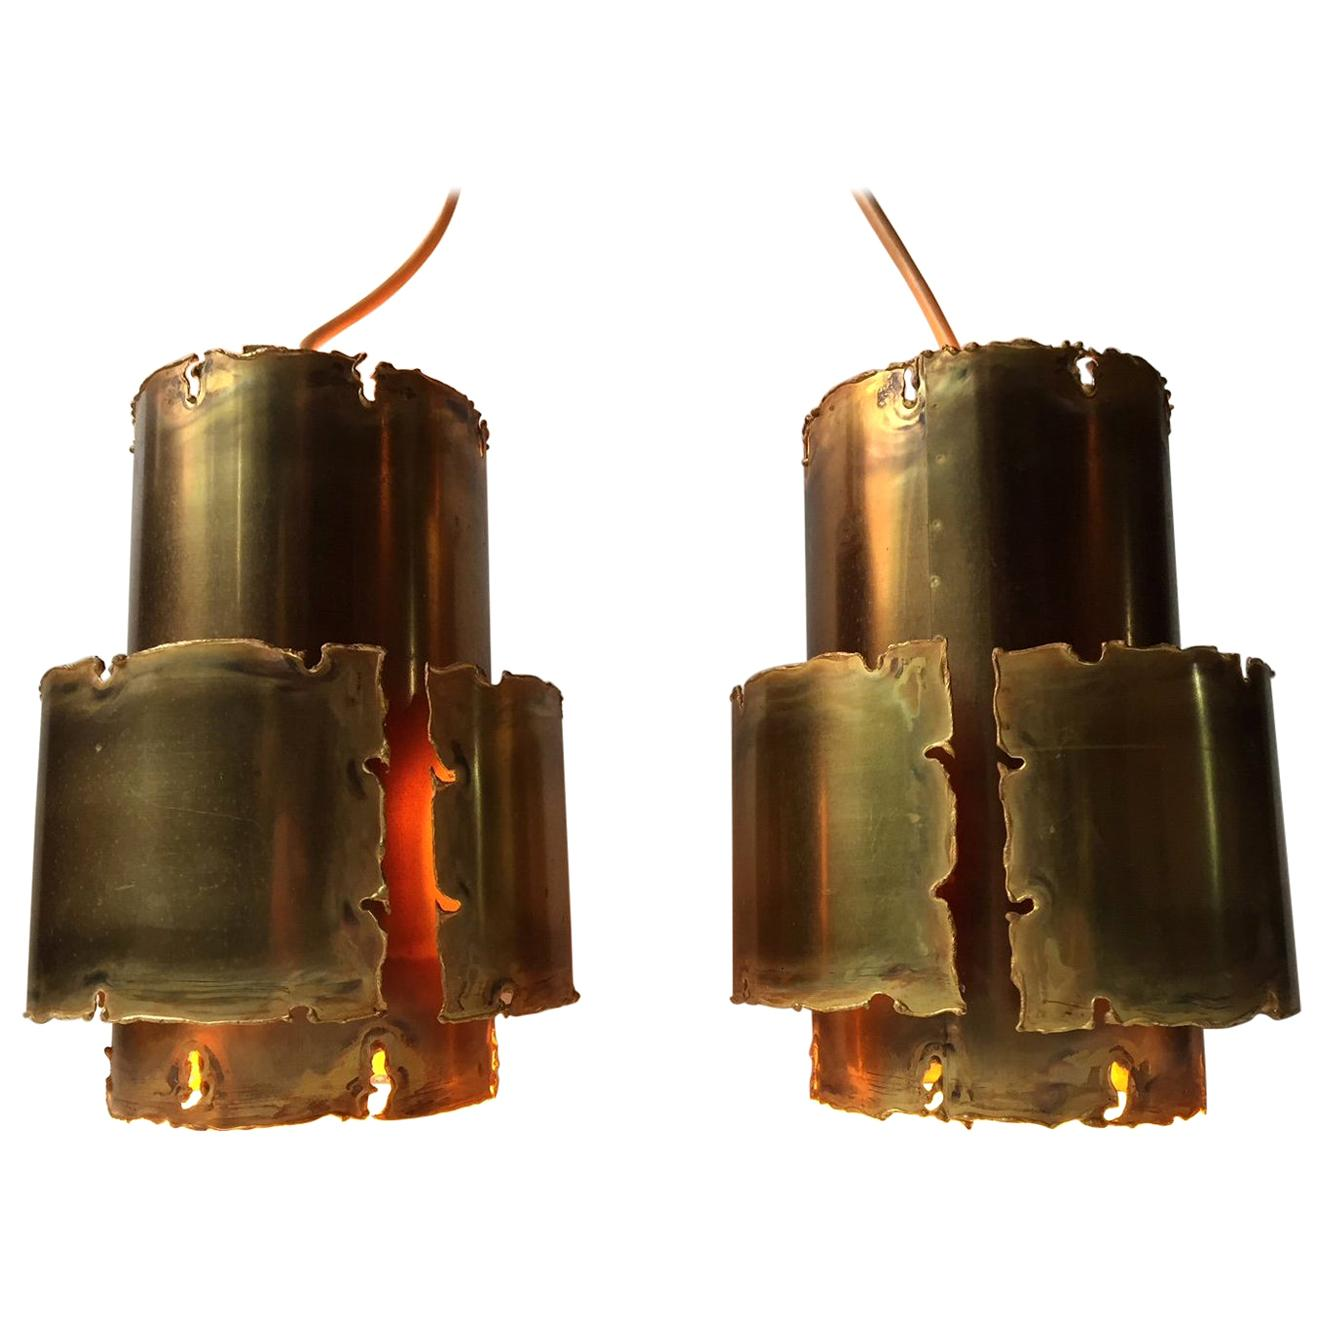 Brutalist Torch Cut Brass Ceiling Lamps by Svend Aage Holm Sørensen, 1960s